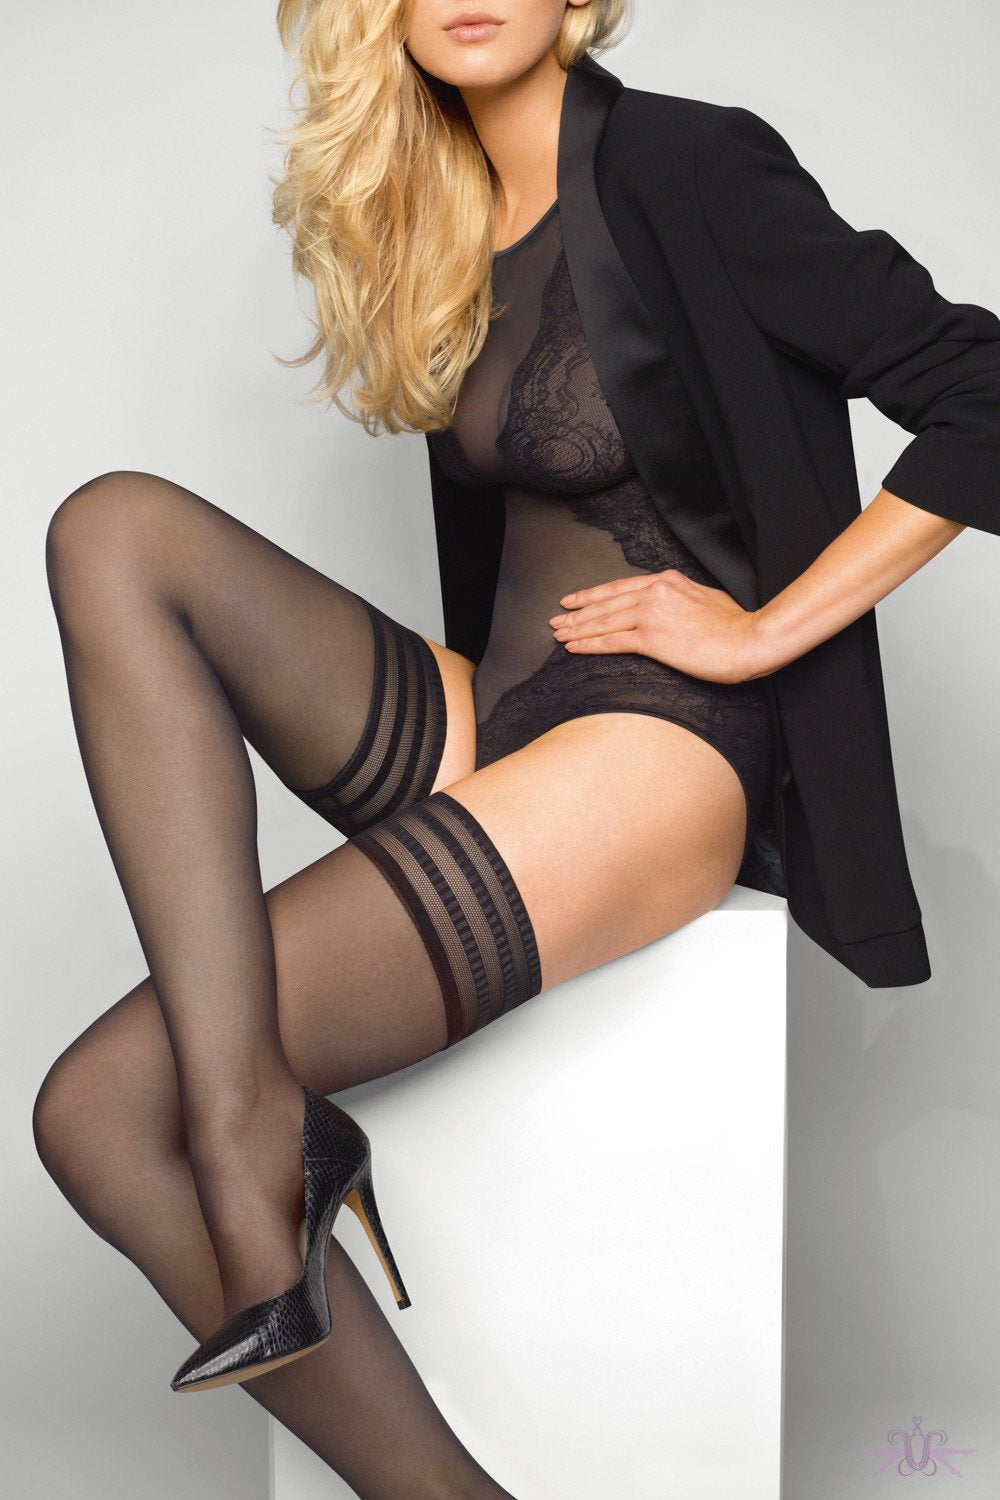 Le Bourget Satine 20D Hold Ups - The Hosiery Box